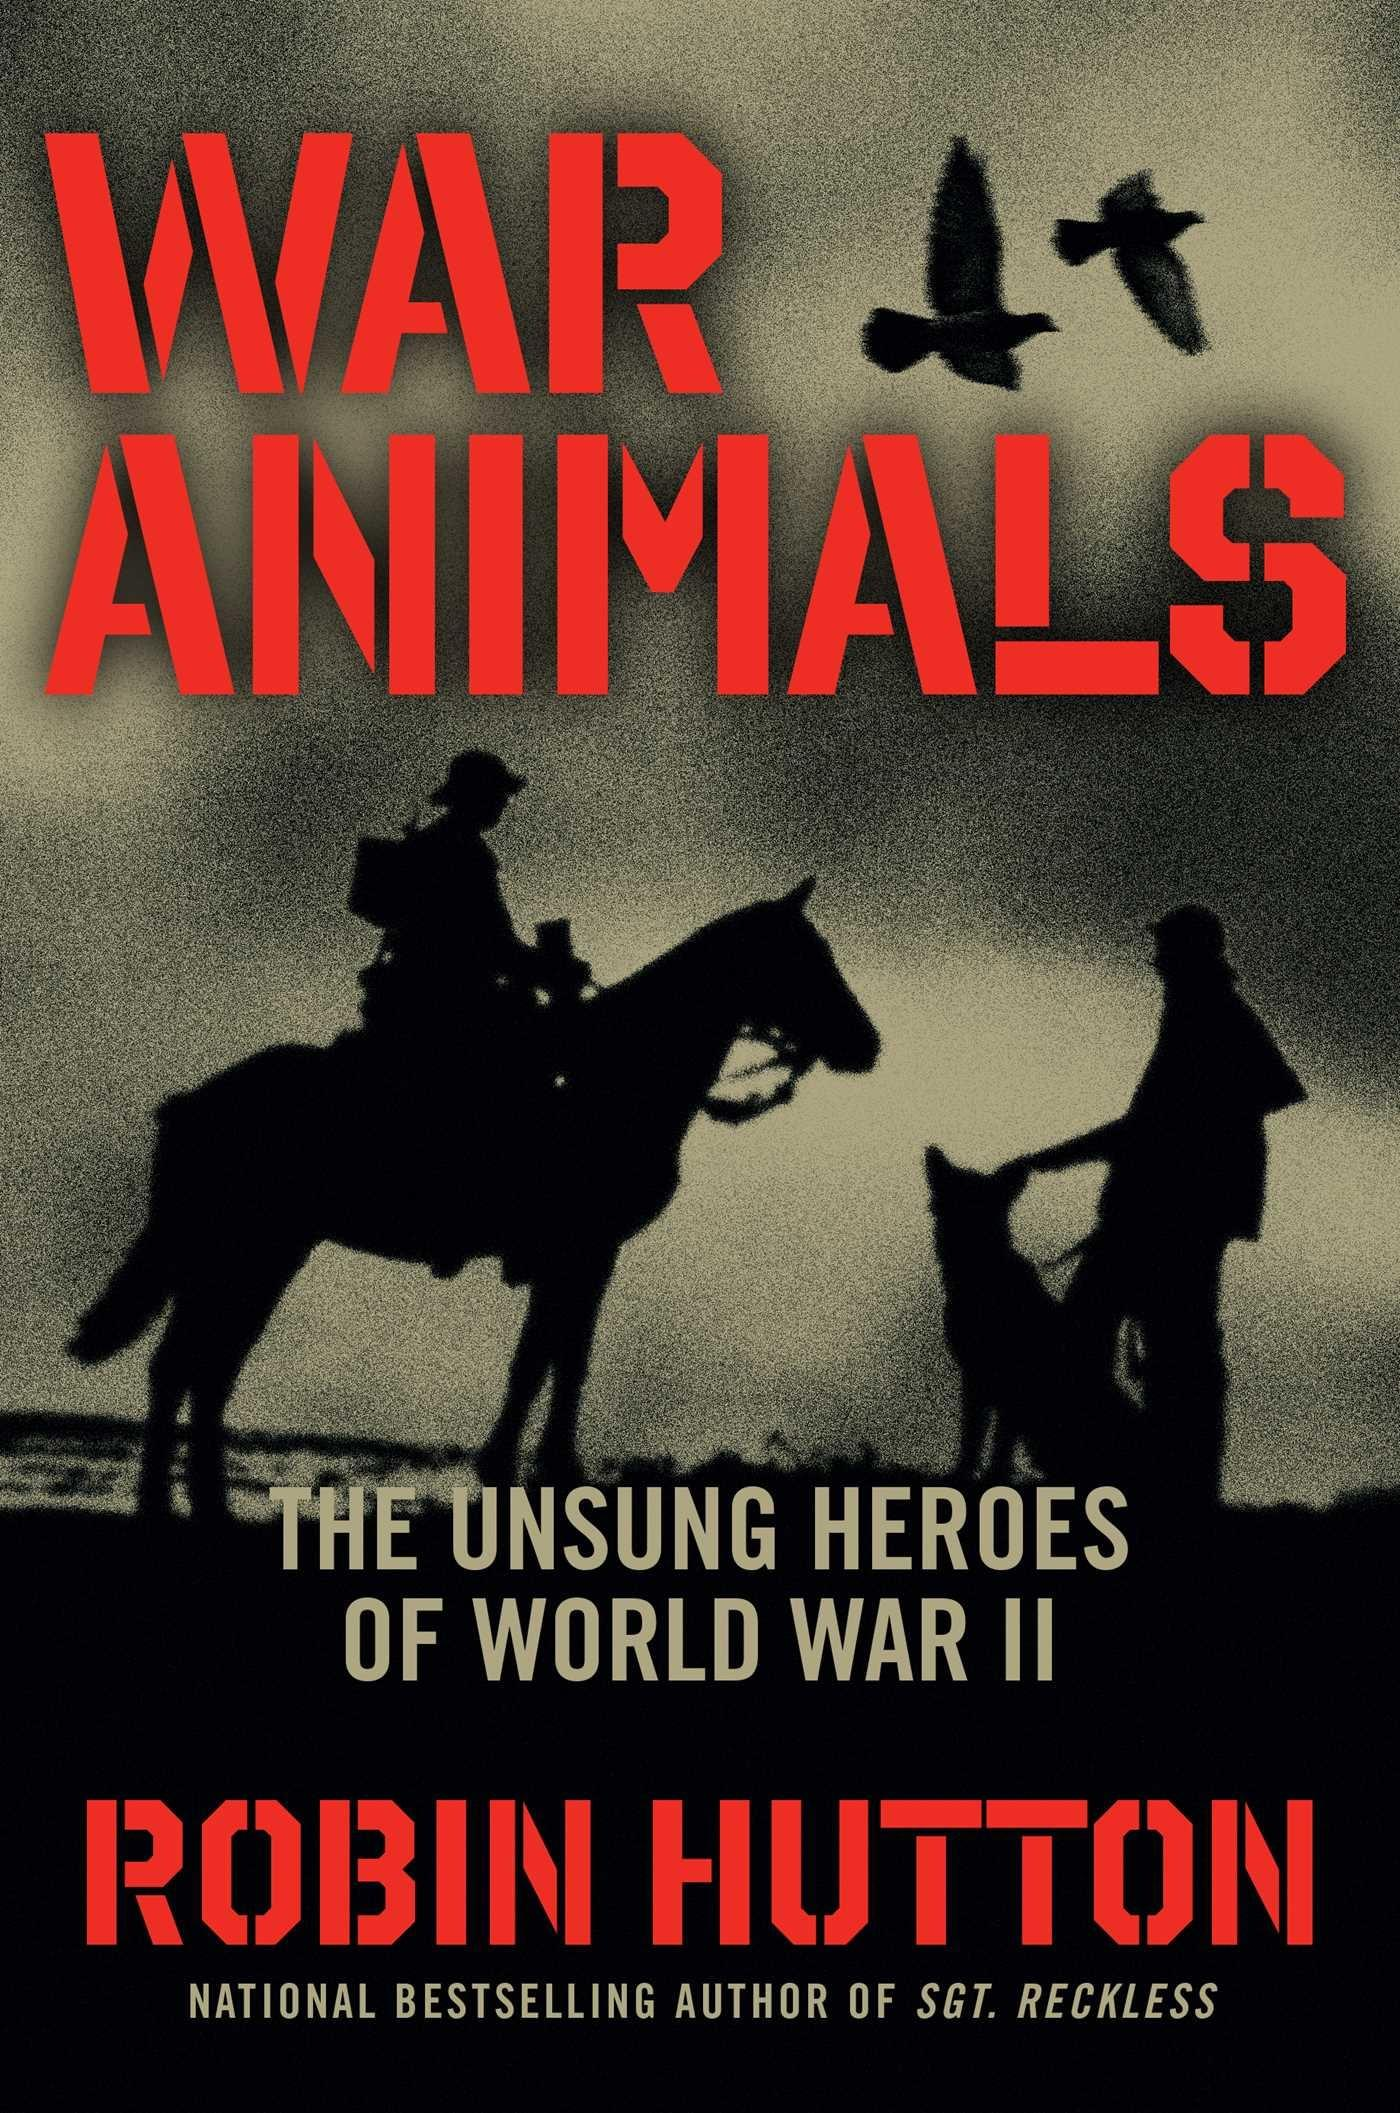 WAR ANIMALS